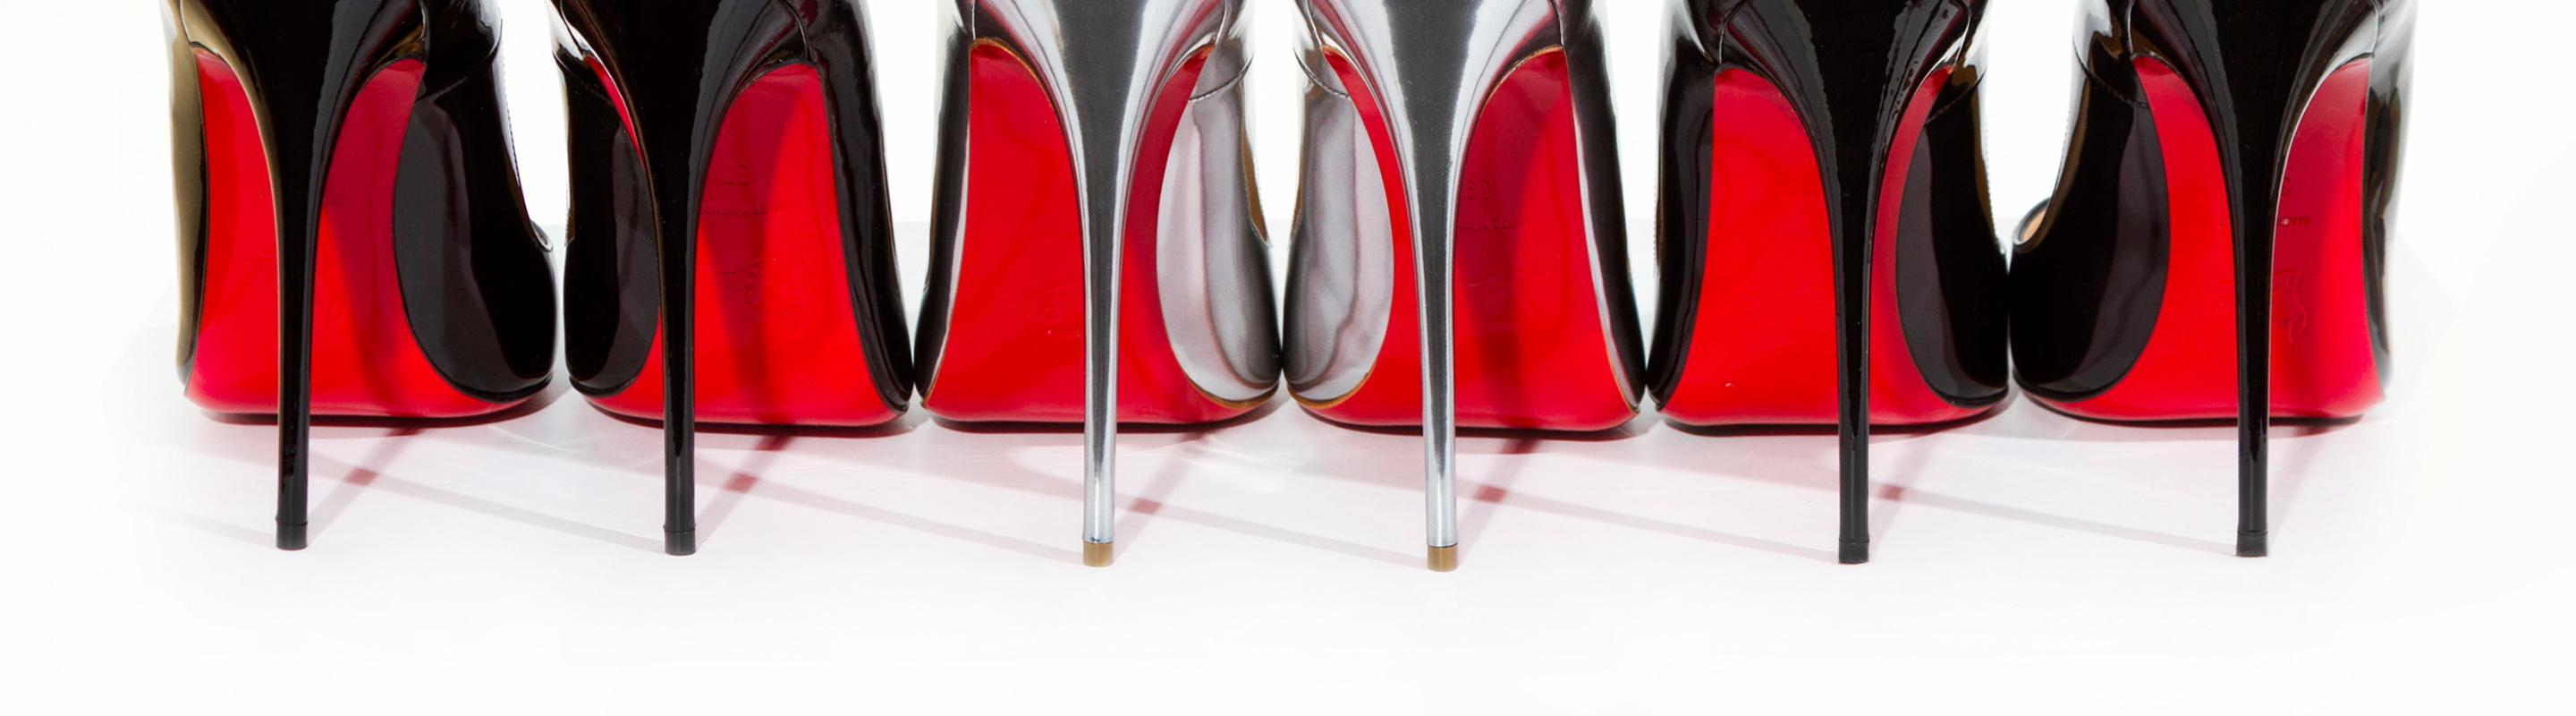 christian louboutin red bottoms for sale